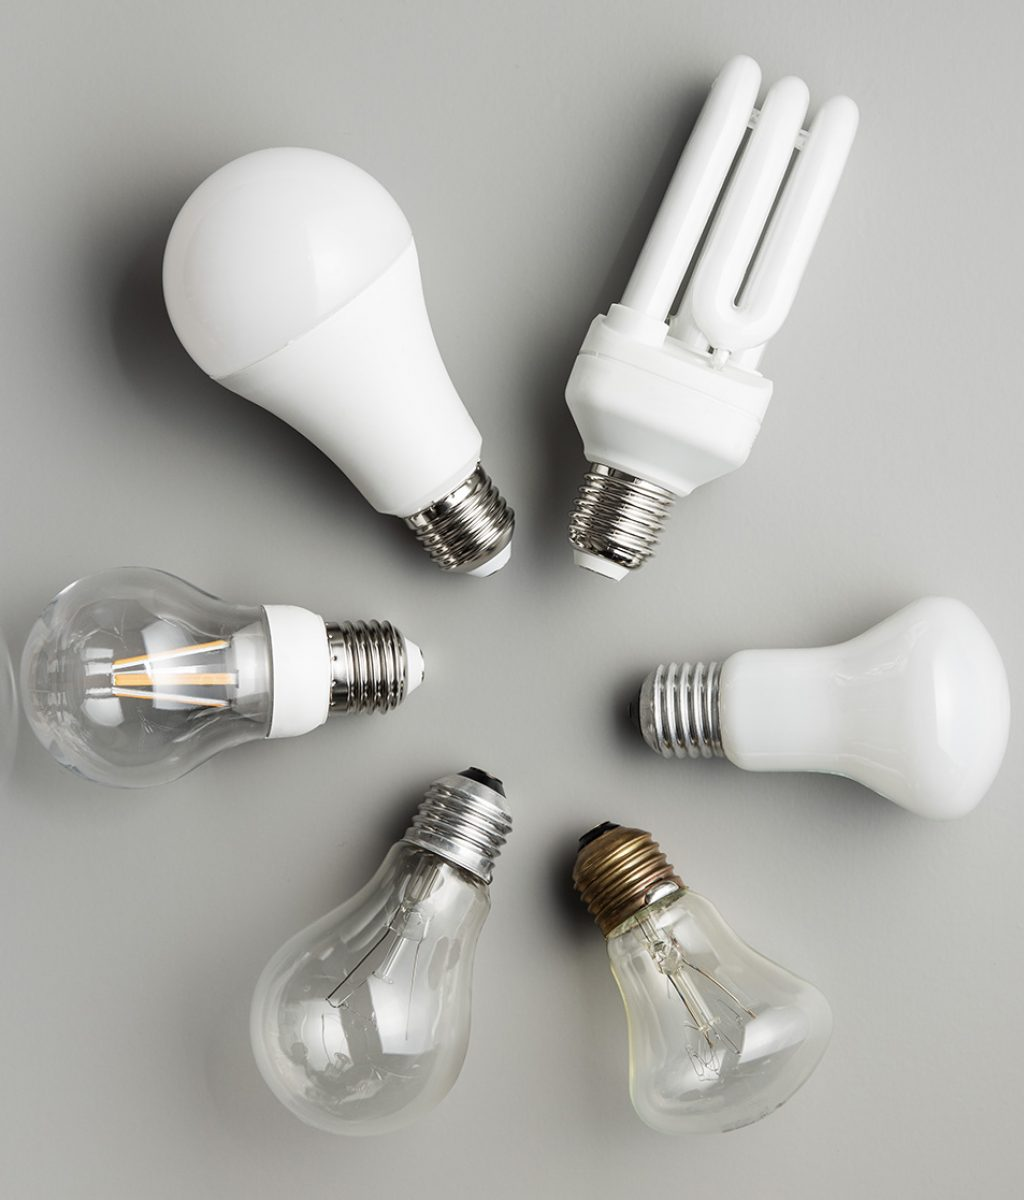 Energy saving and classic light bulbs on gray background. Top view.